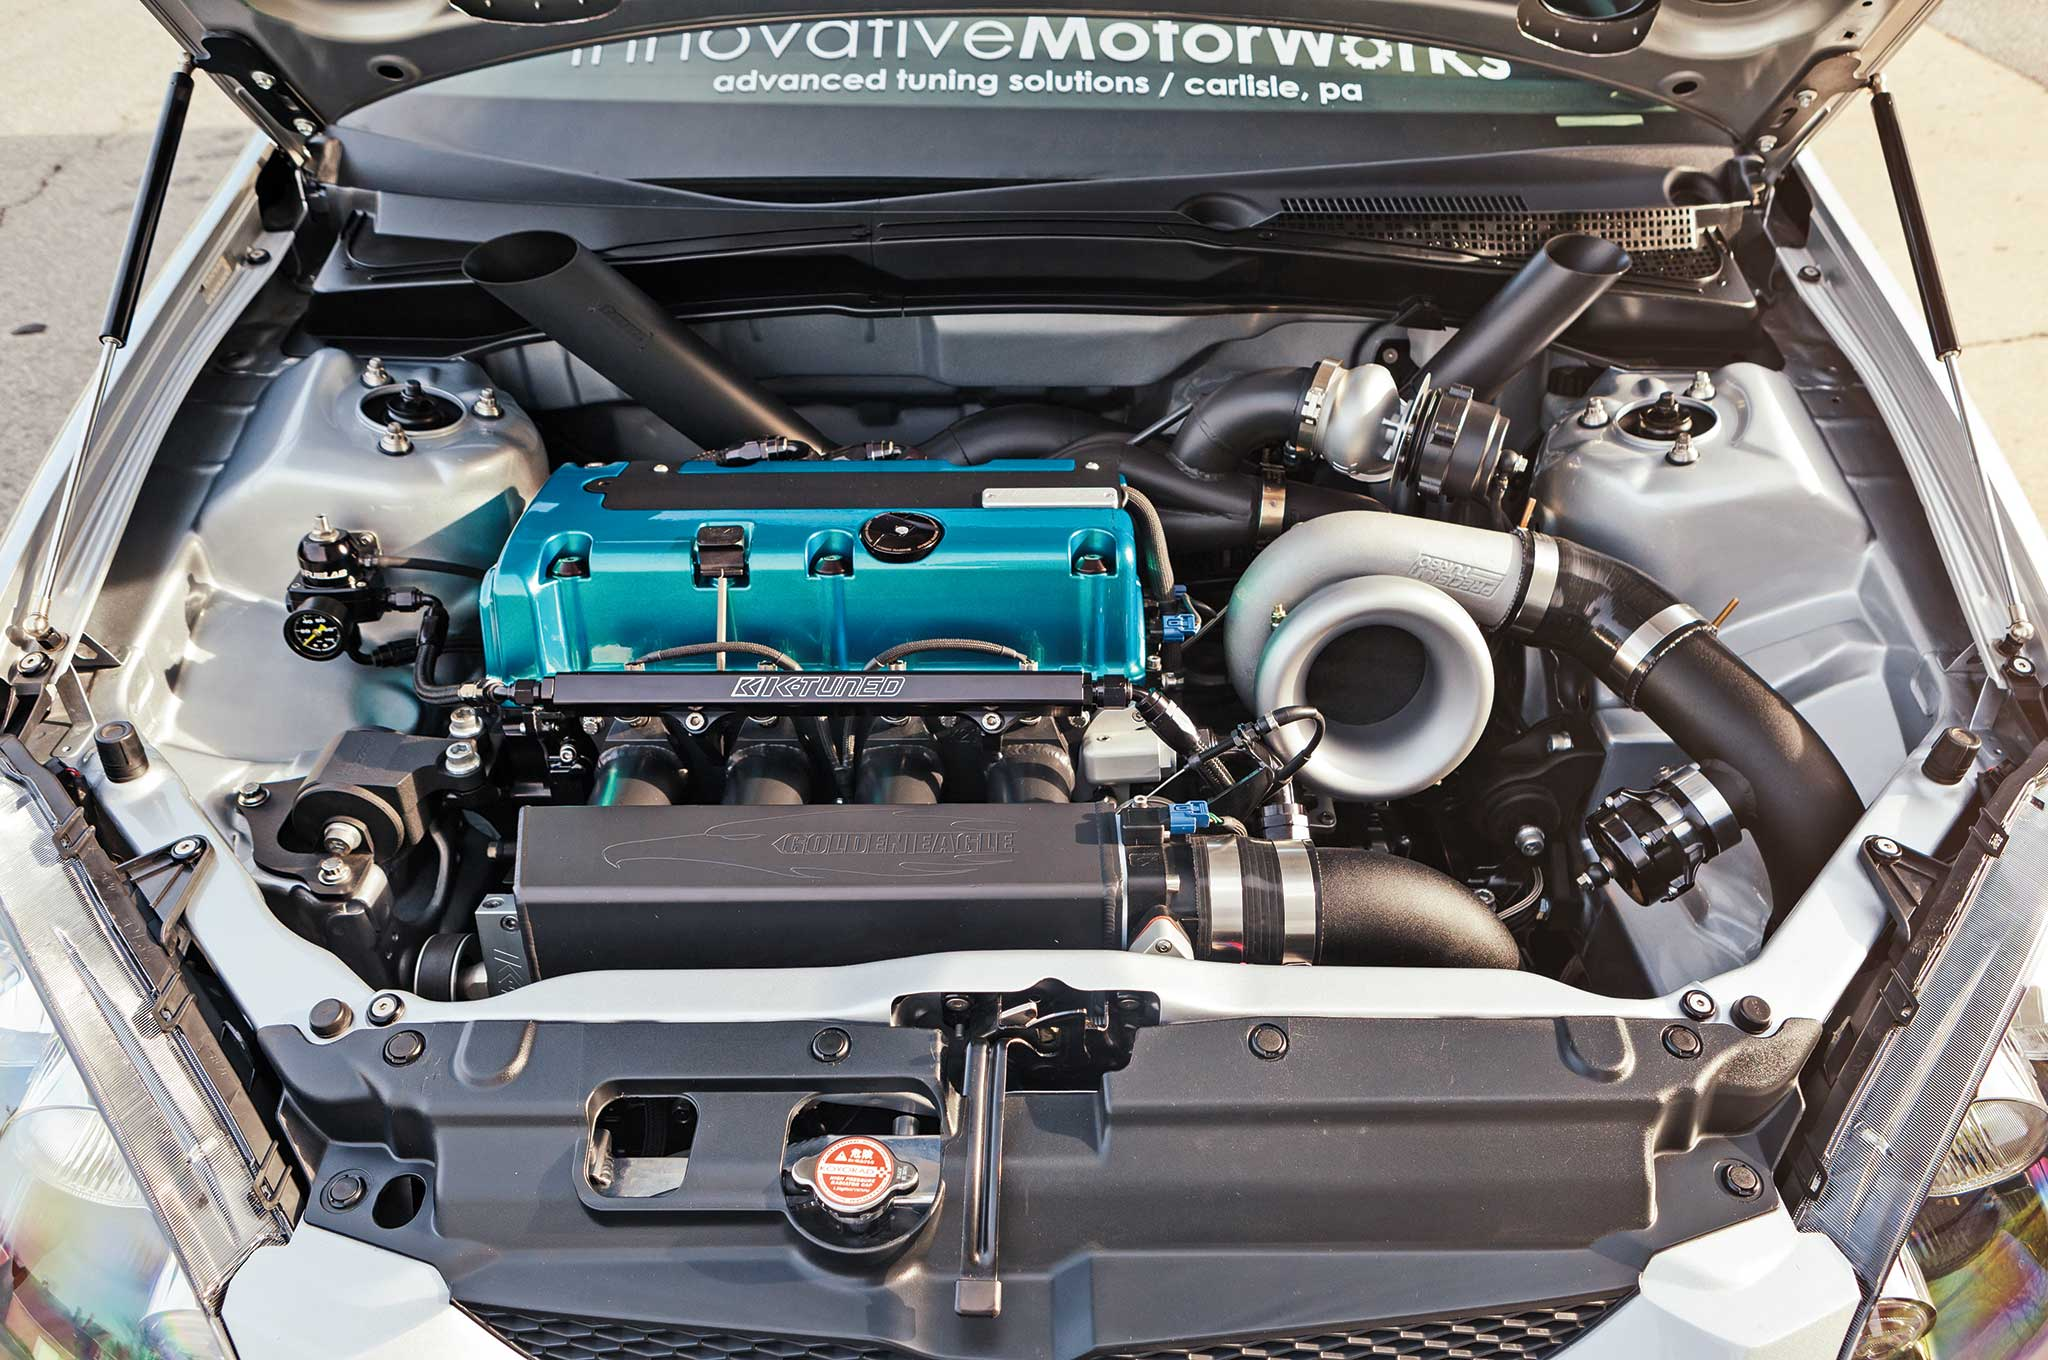 How to Make 500hp - The 500hp Solution